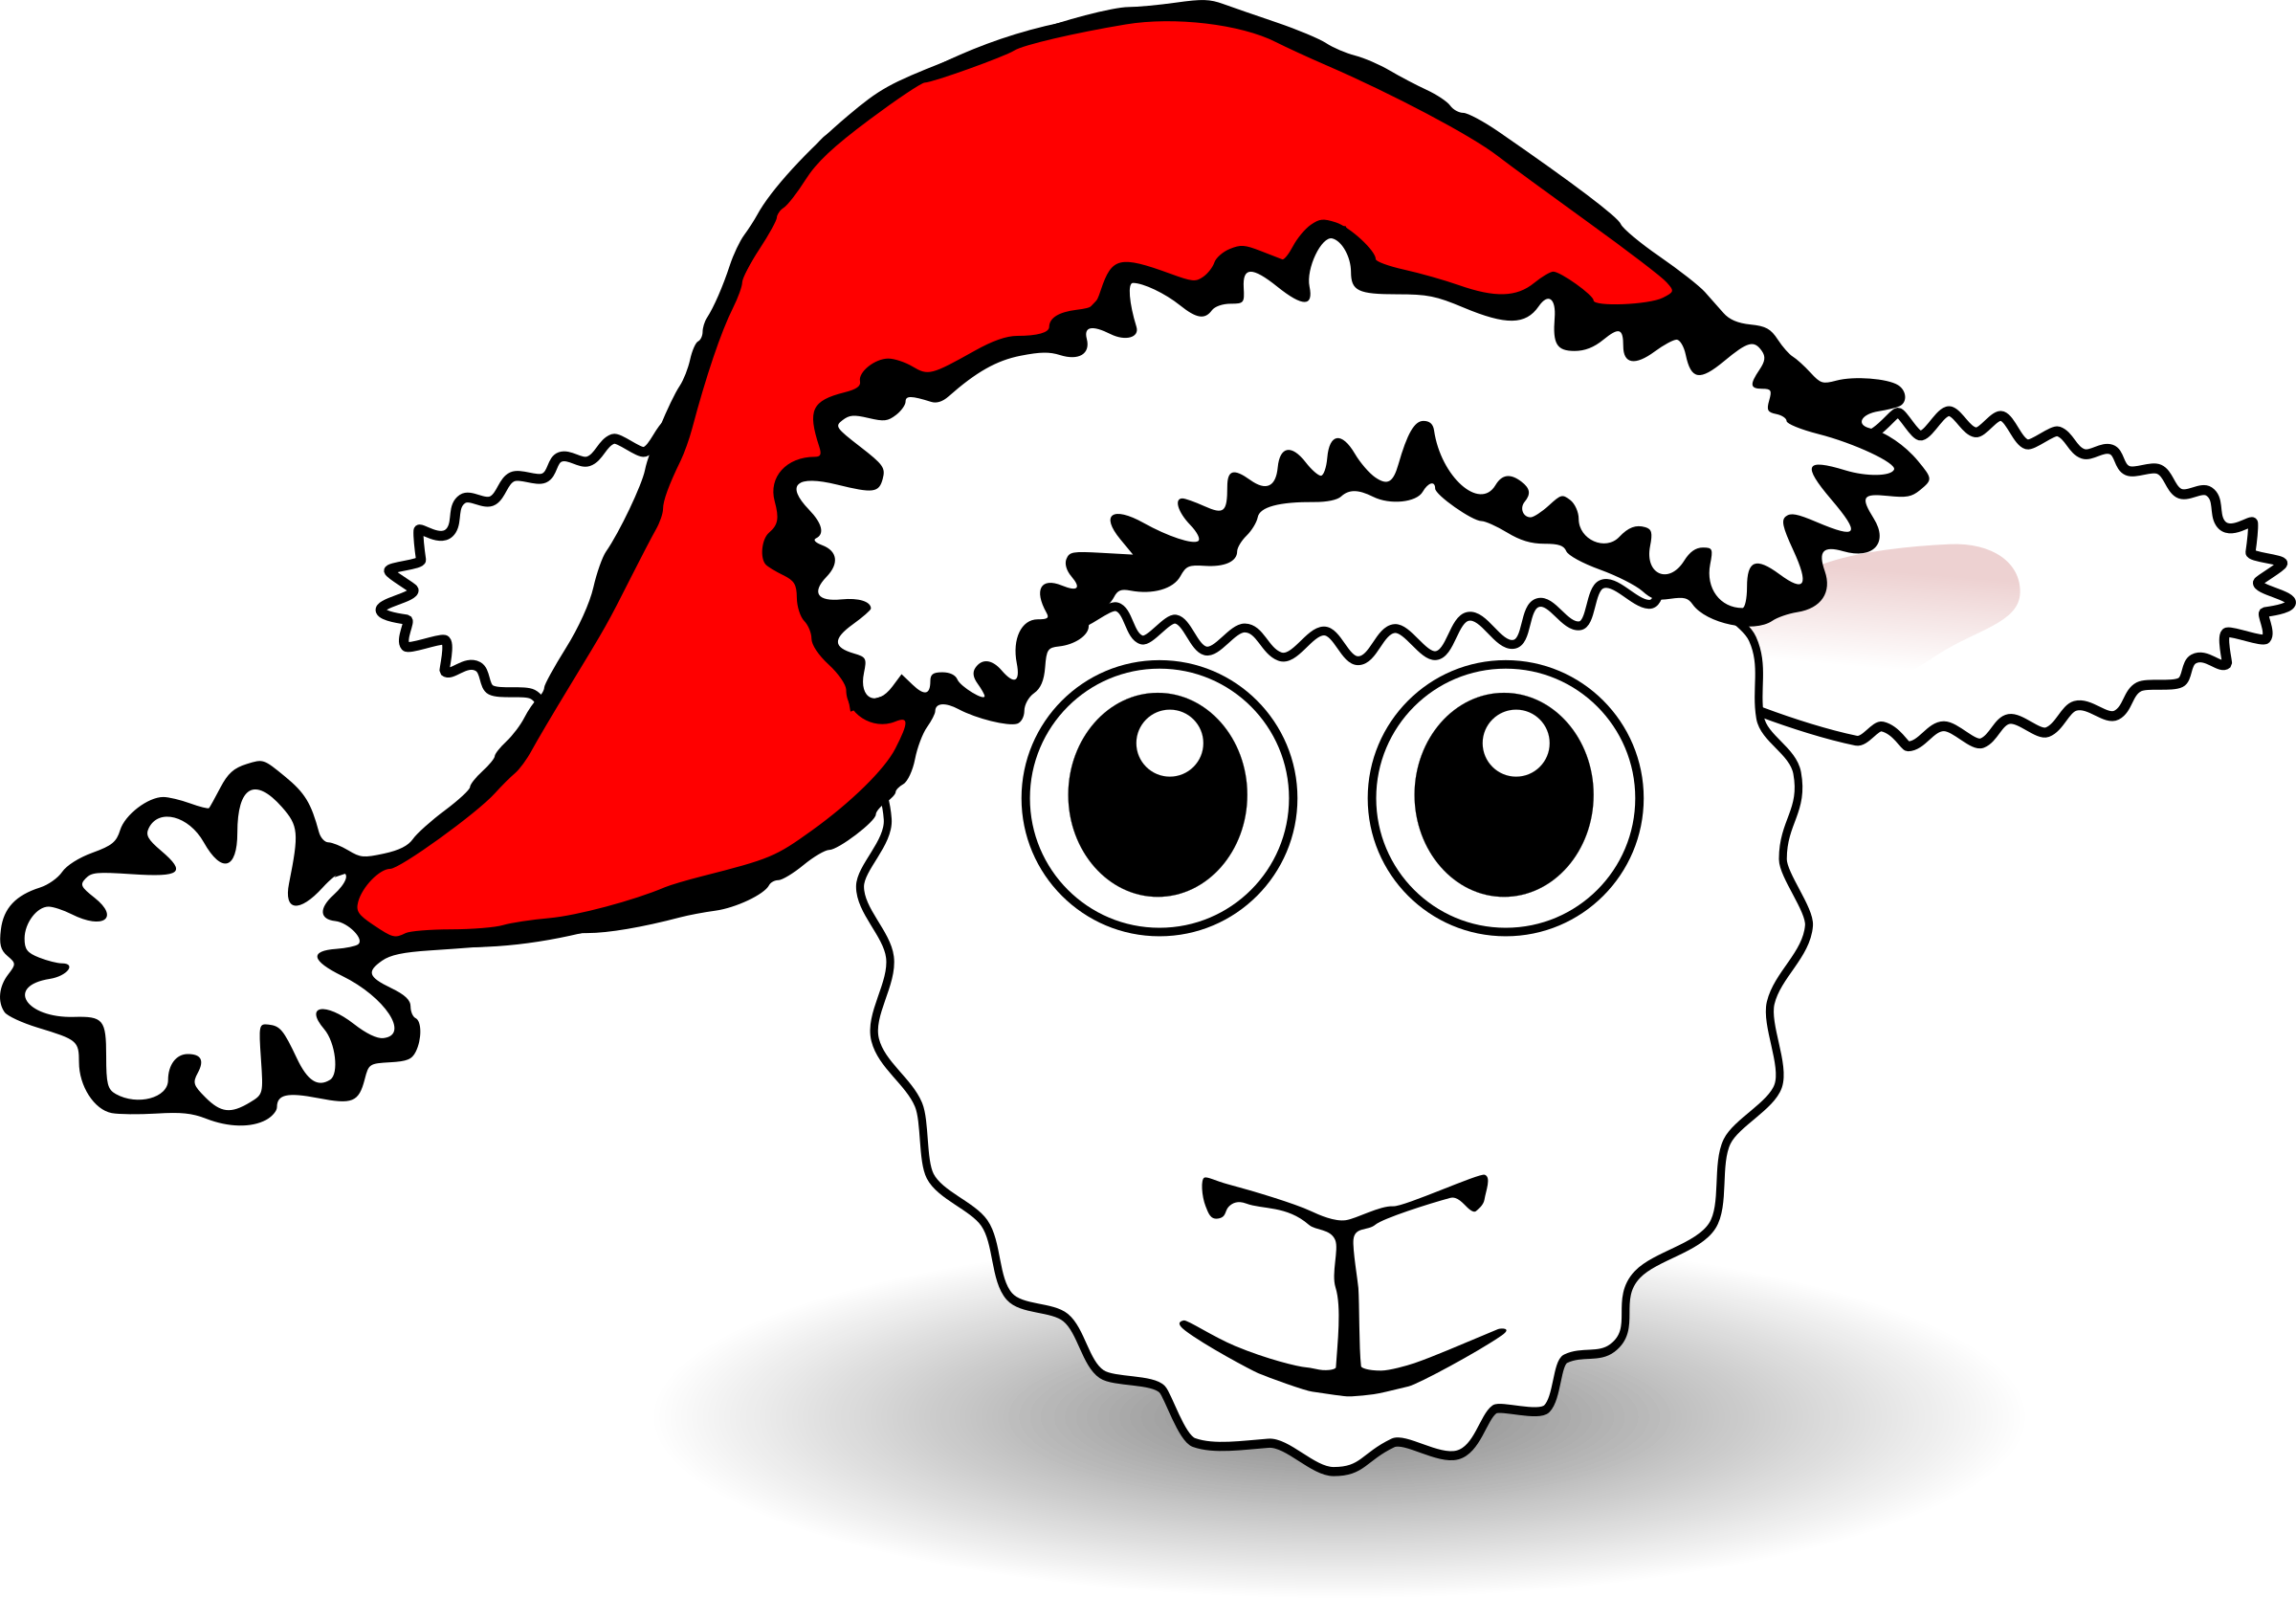 Funny Sheep Face White Cartoon with Santa Claus hat by palomaironique